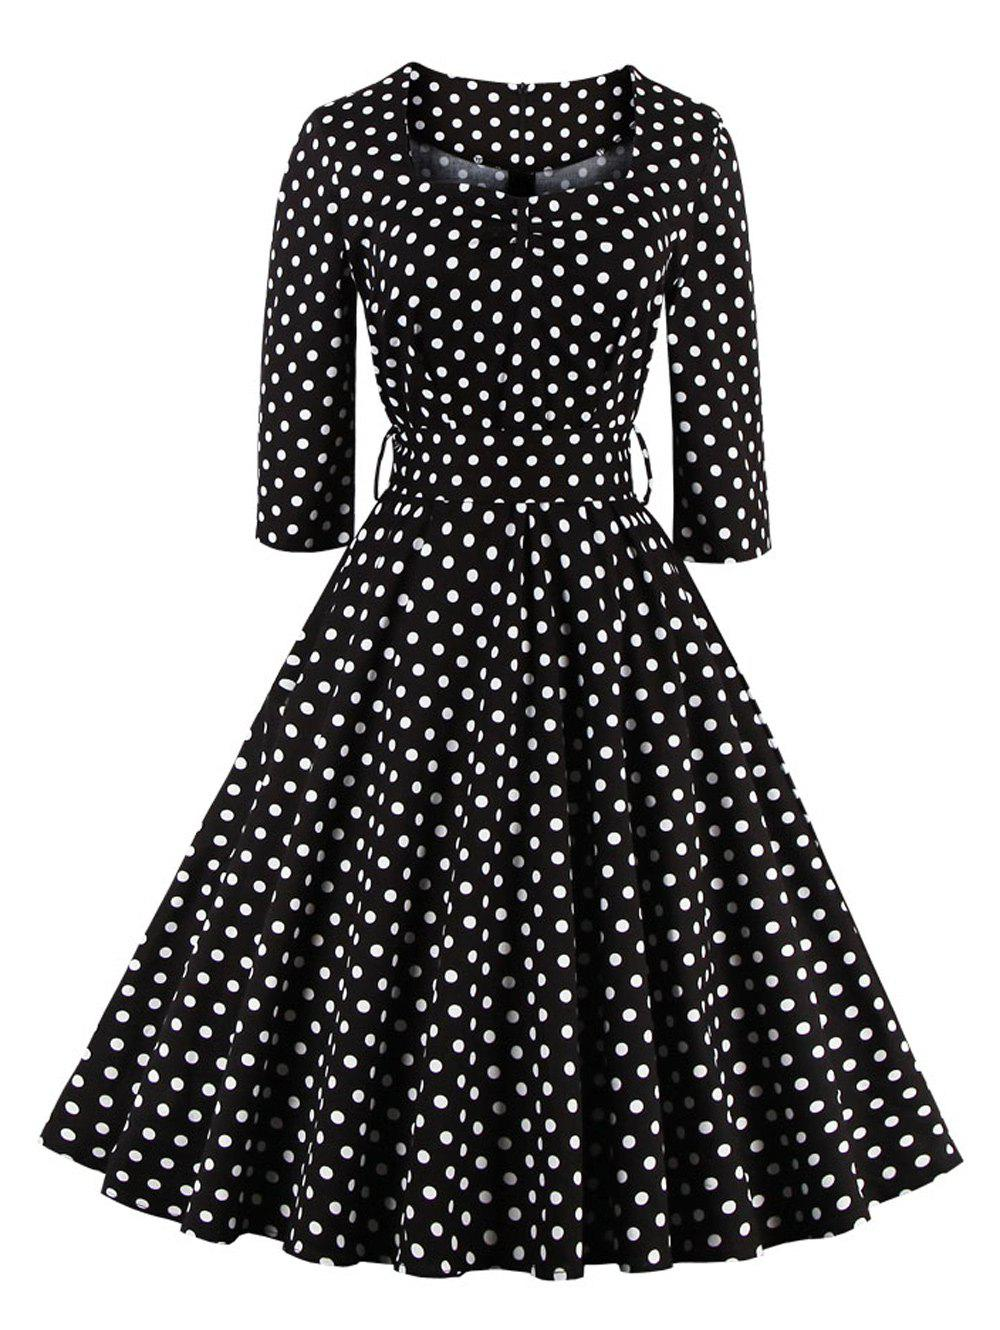 Retro Sweetheart Neck Polka Dot Printed Flare Dress - BLACK XL